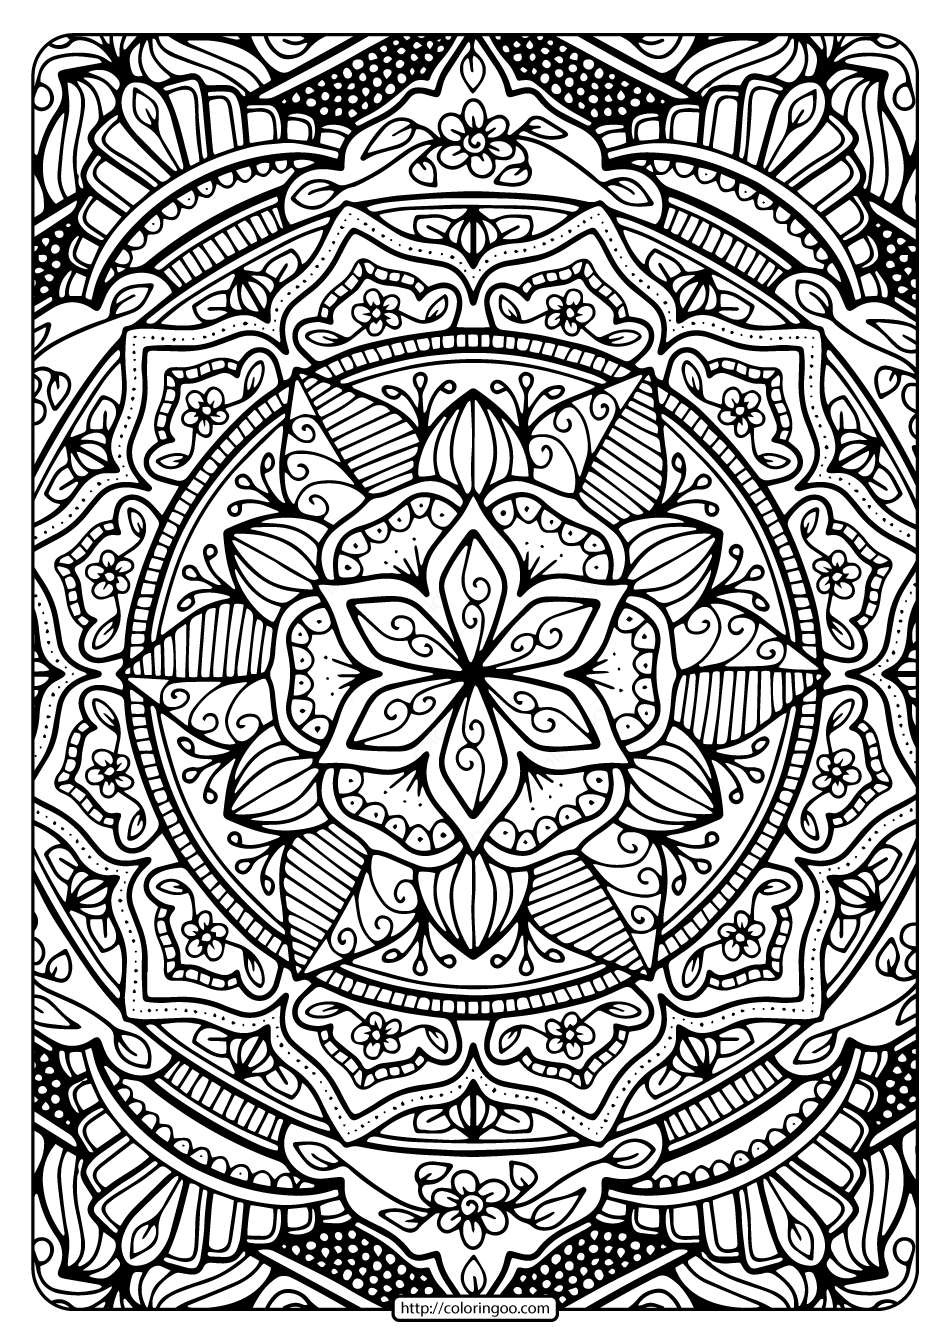 Printable Coloring Book Pages for Adults 003